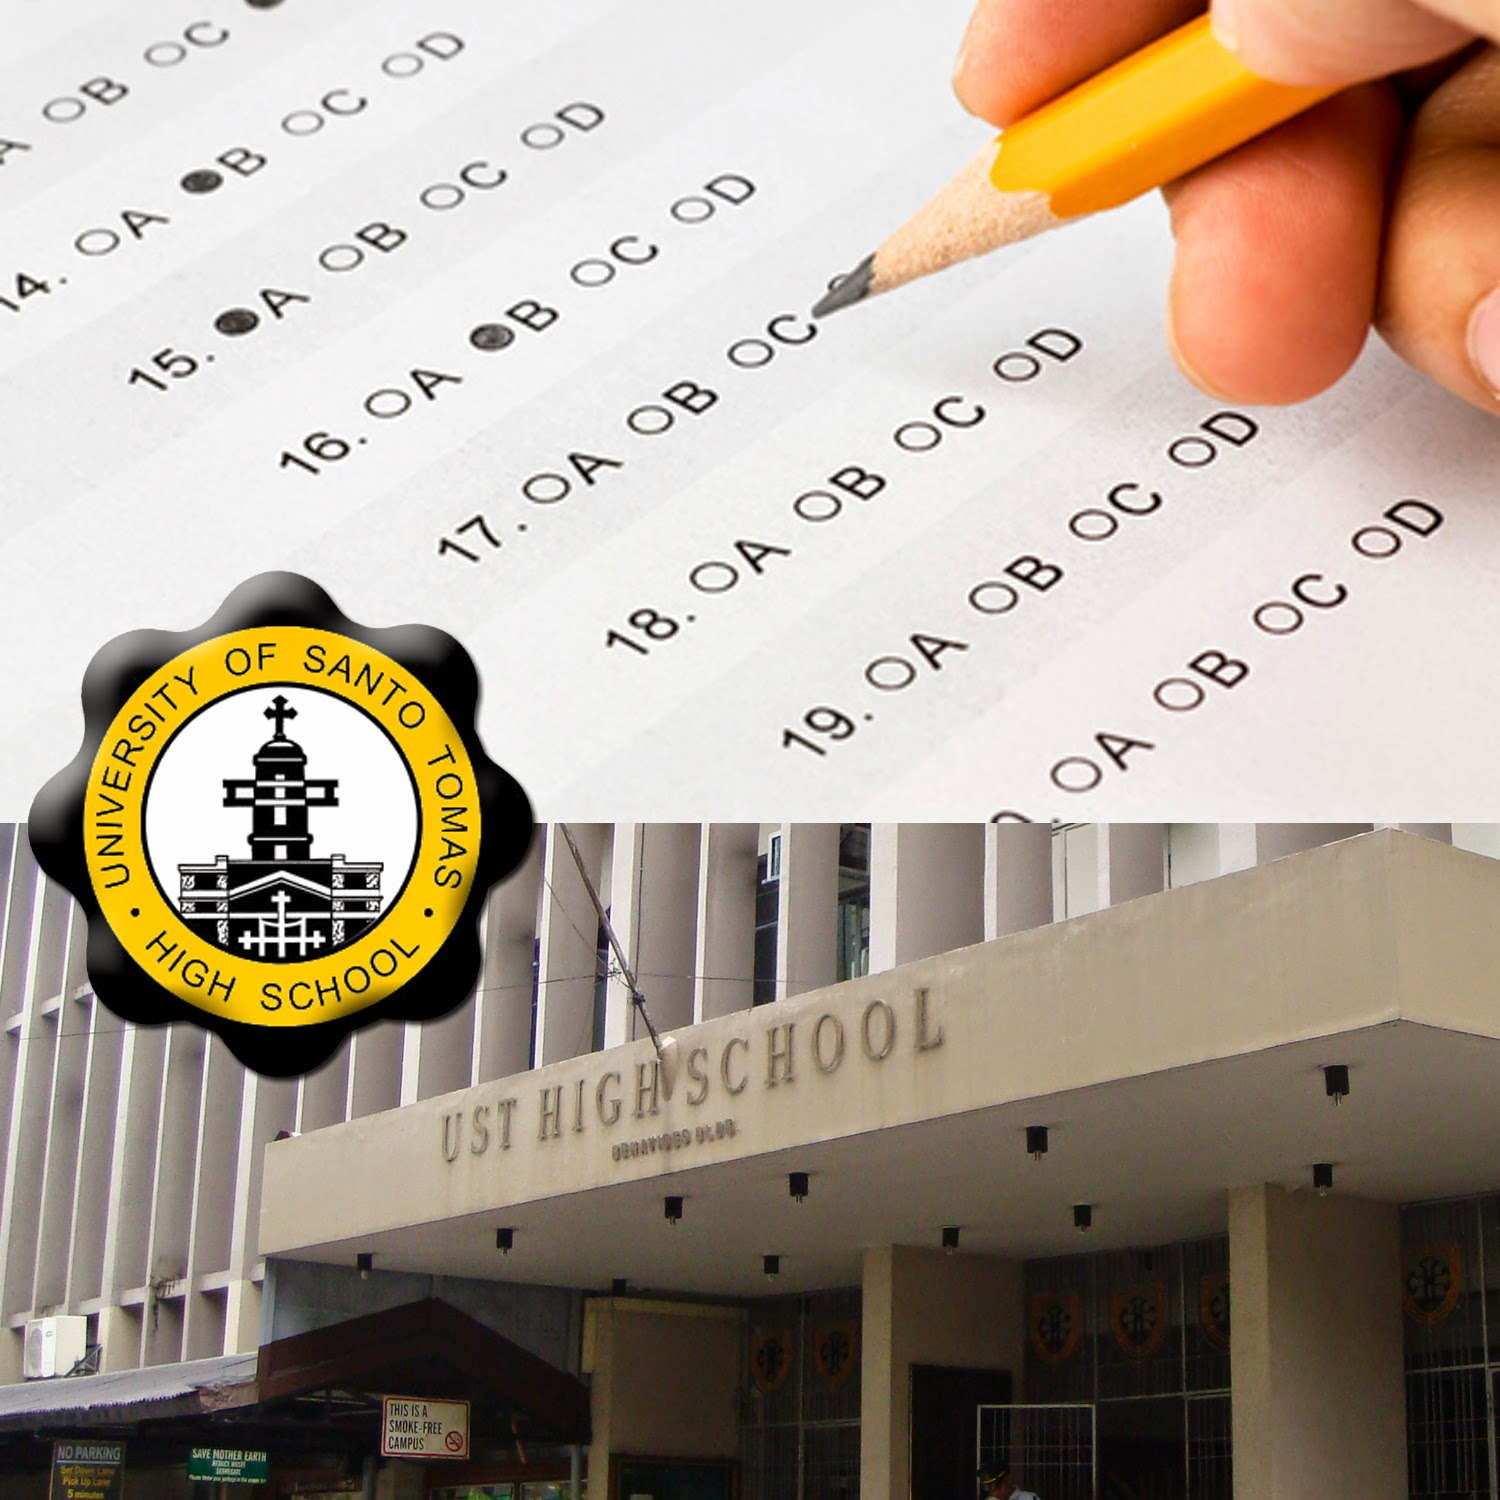 Ust Architecture Drawing Exam university of santo tomas: august 2014